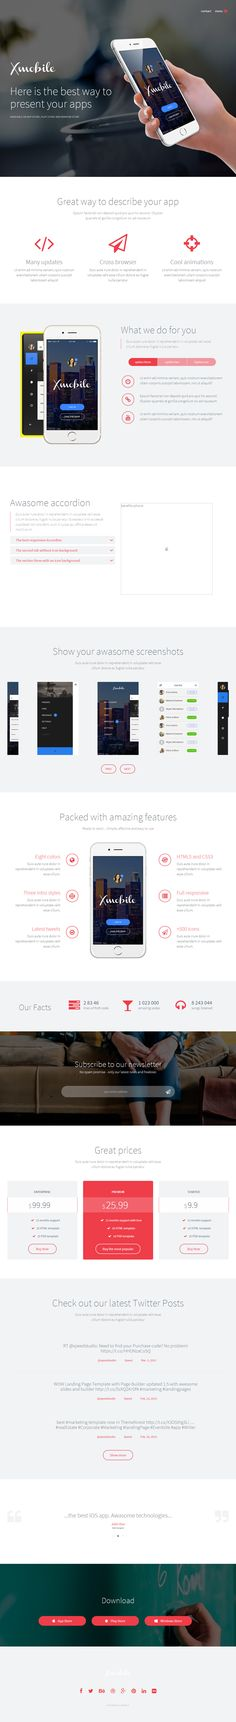 Xmobile is Premium full Responsive Retina WordPress Landing Page Theme. One Page. Bootstrap Framework. Parallax Scrolling. Test free demo at: http://www.responsivemiracle.com/cms/xmobile-premium-responsive-app-landing-page-wordpress-theme/